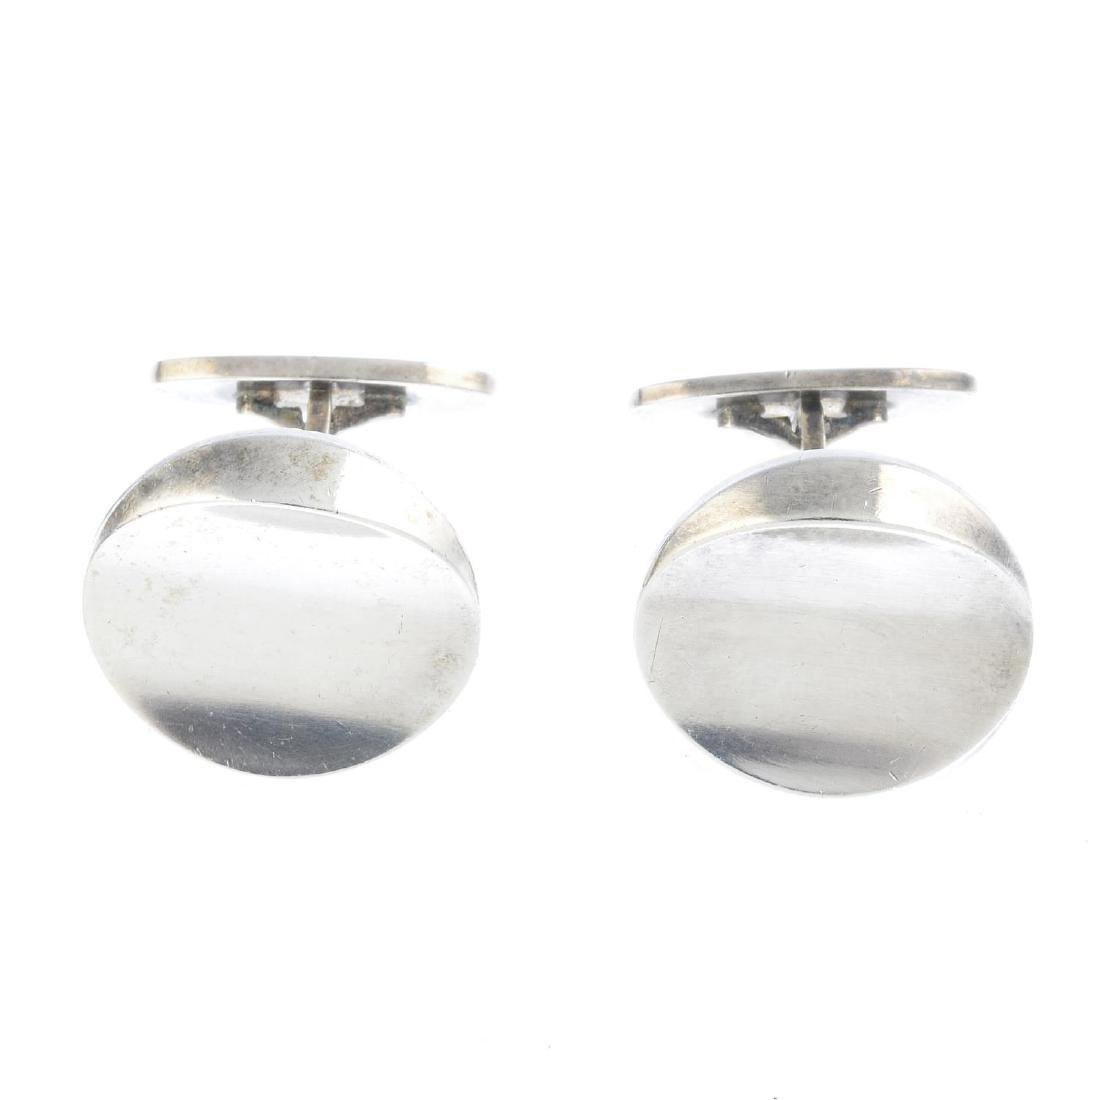 GEORG JENSEN - a pair of cufflinks. Each designed as a